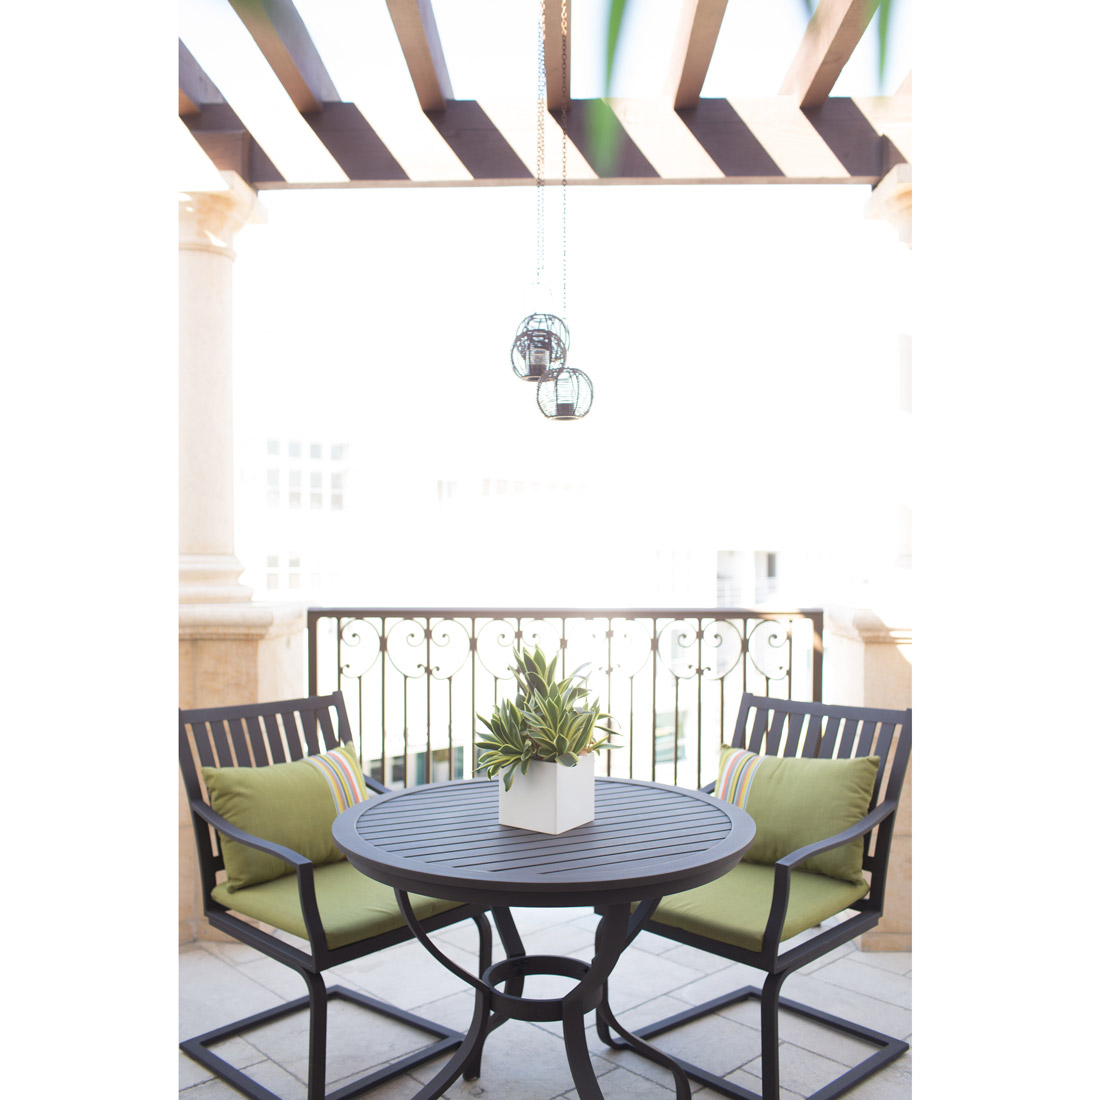 outdoor patio space with pergola and metal dining chairs and bistro table with green accents and sunbrella fabric cushions with succulent planter for centerpiece hanging metal globes with candles for outdoor lighting